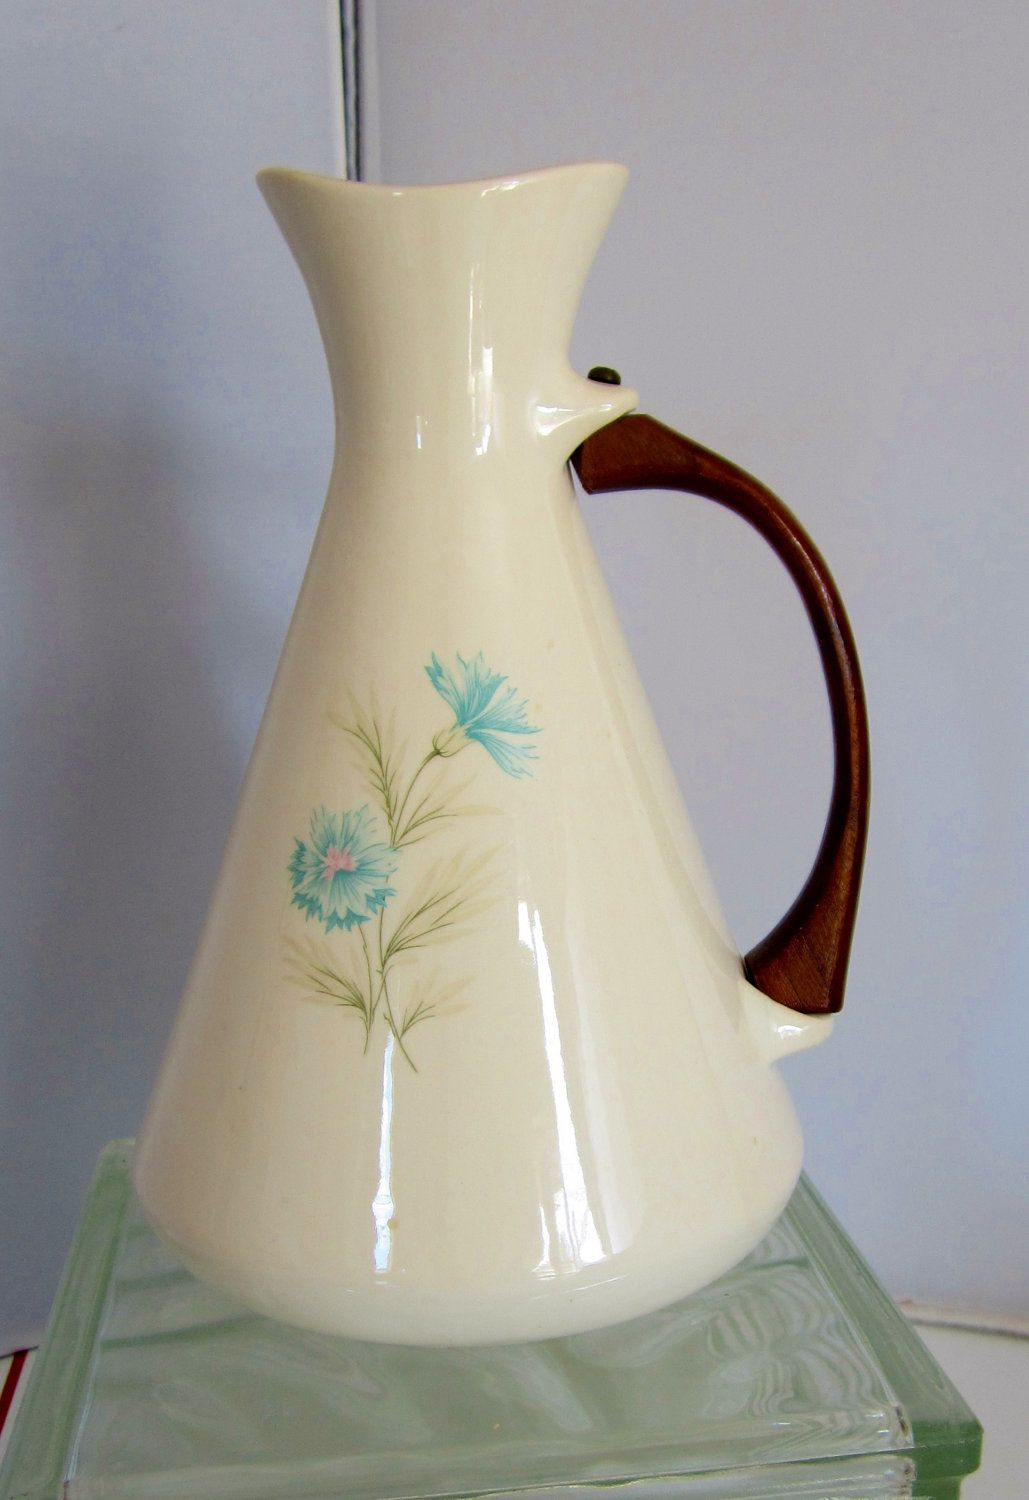 vintage 1950s taylor smith taylor ever yours boutonniere pitcher carafe on kitchen decor pitchers carafes id=93305